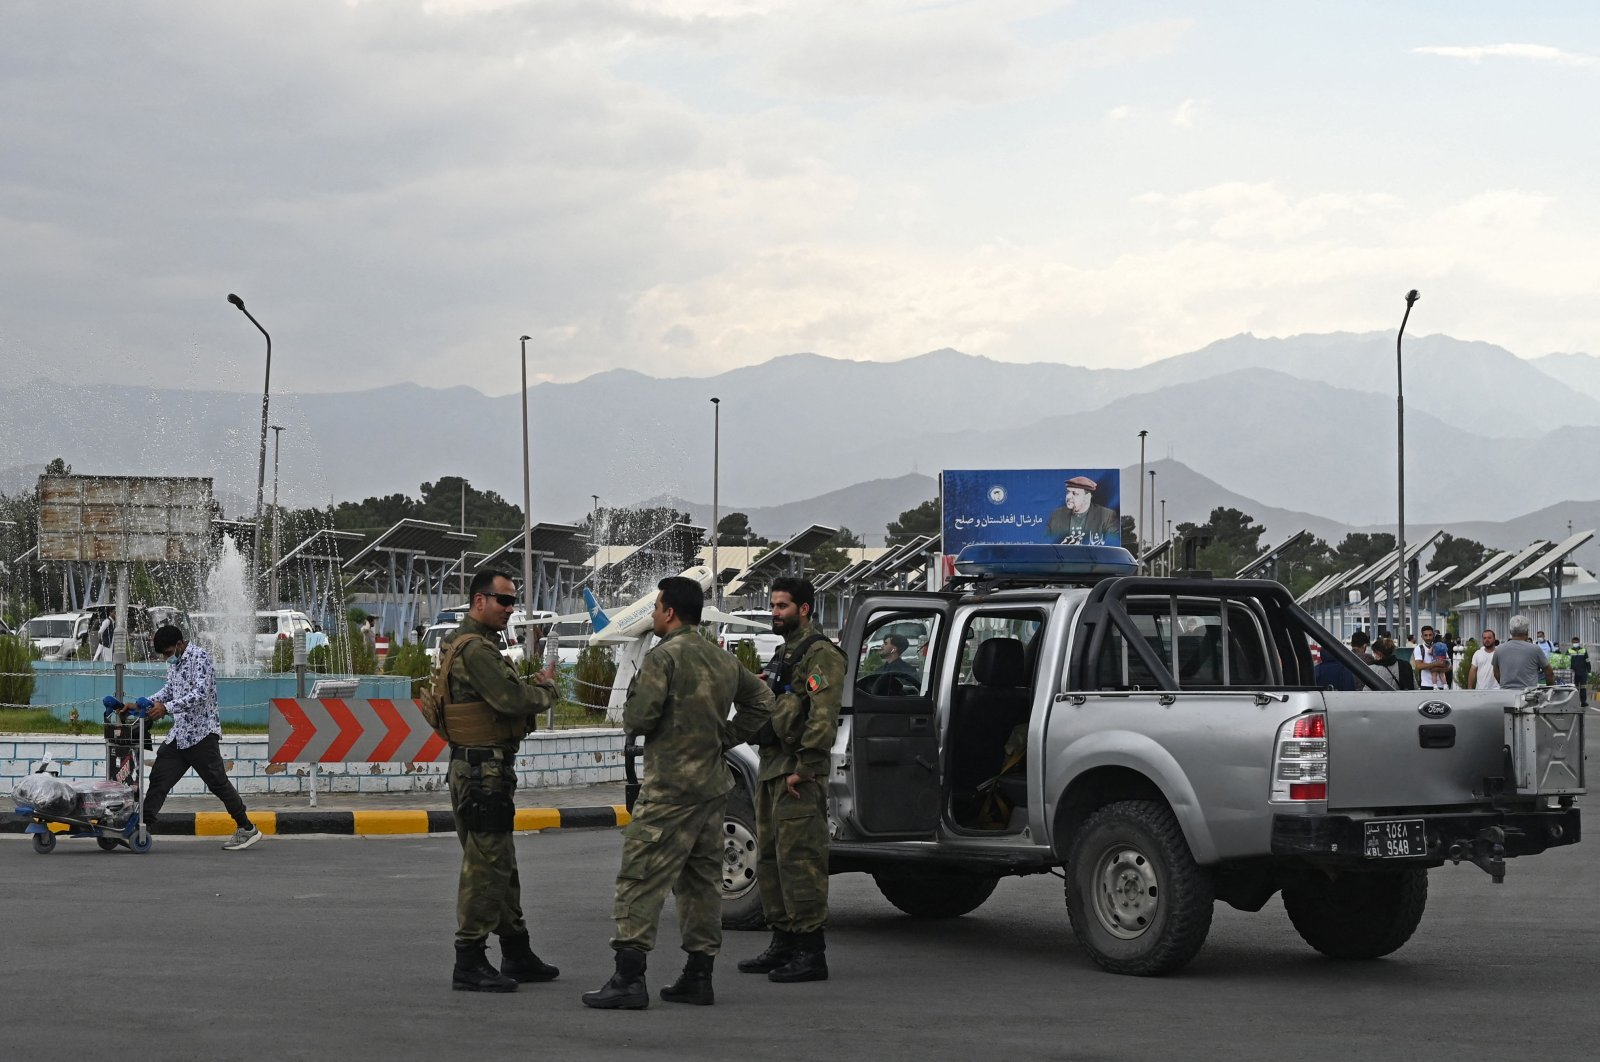 Afghan security personnel stand guard at the Kabul Hamid Karzai International Airport, Kabul, Afghanistan, July 16, 2021. (AFP Photo)